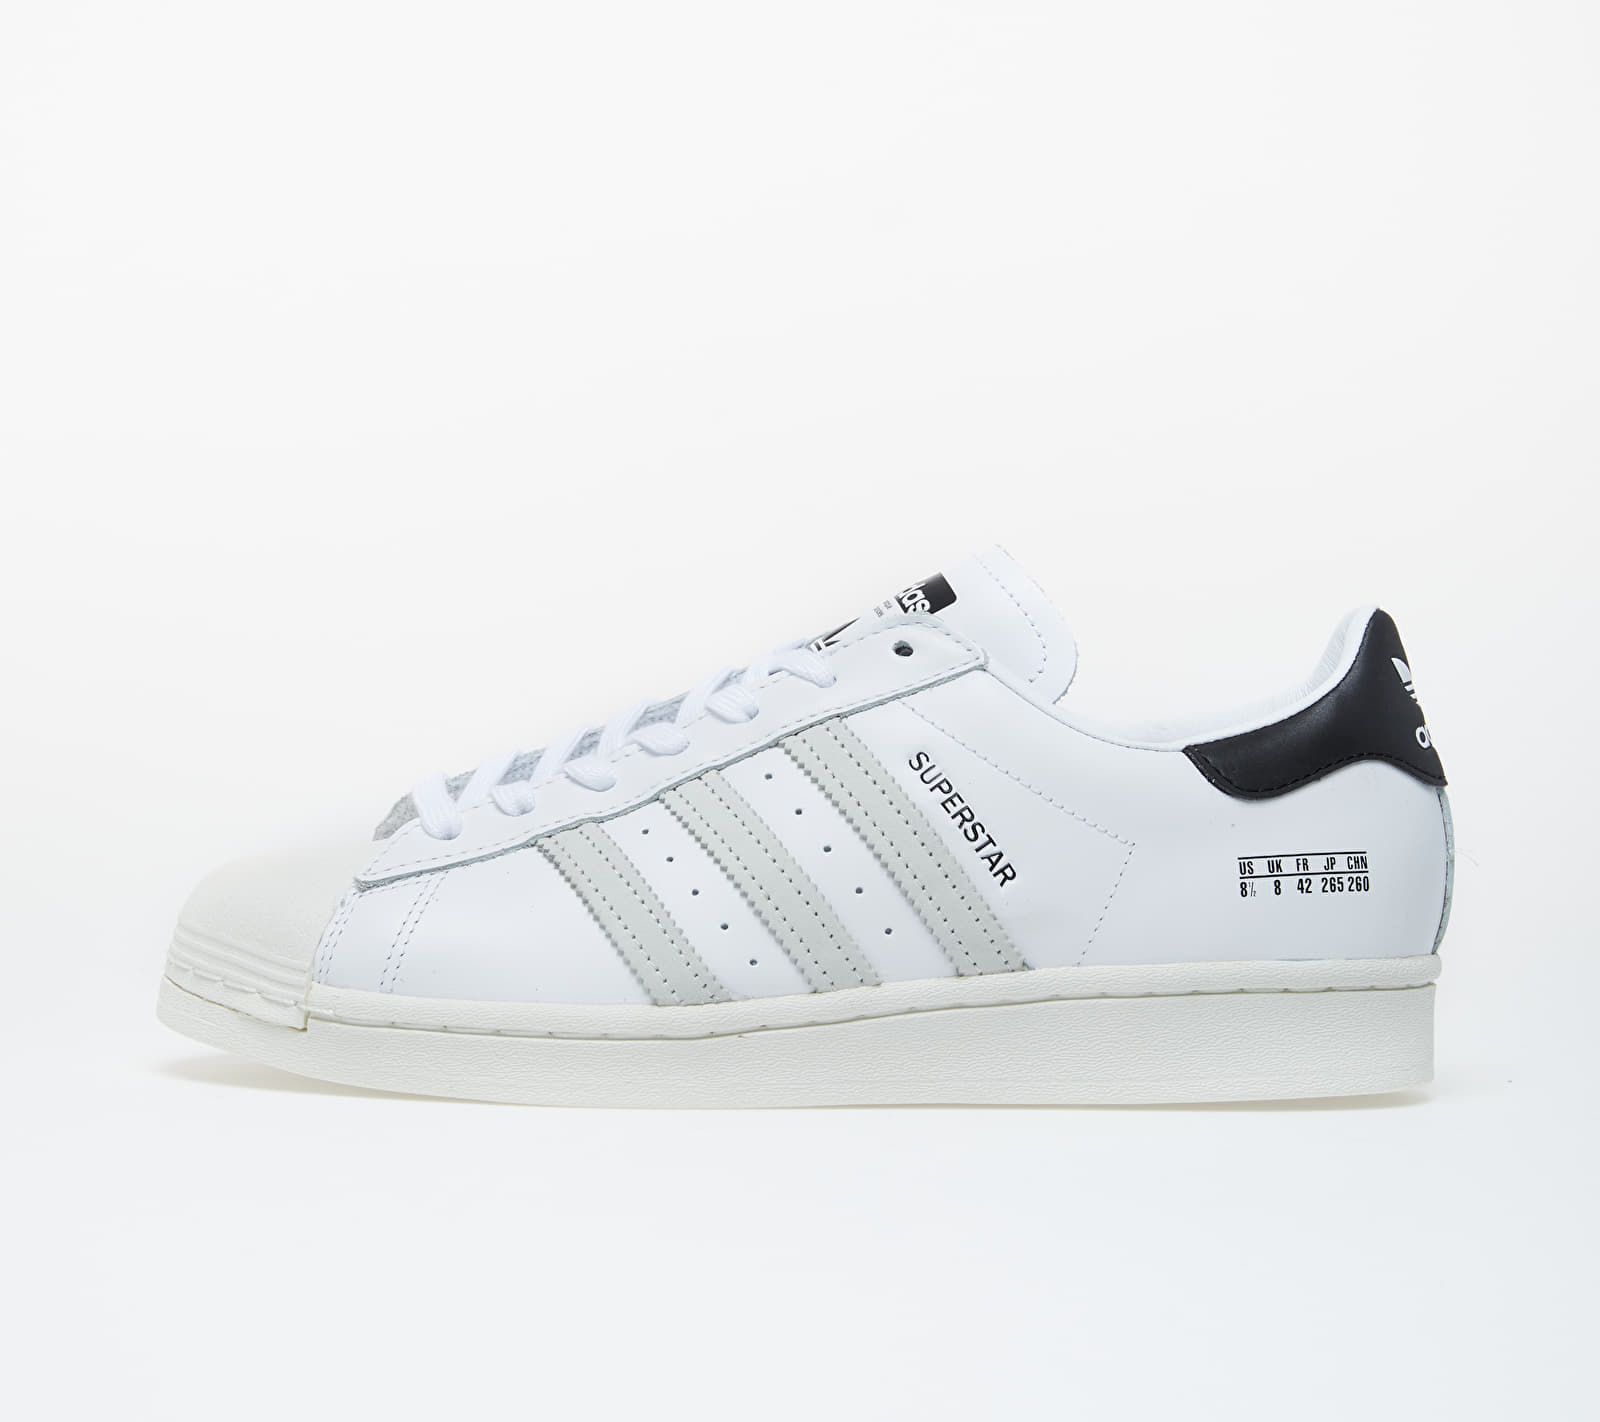 adidas Superstar Ftw White/ Ftw White/ Core Black EUR 40